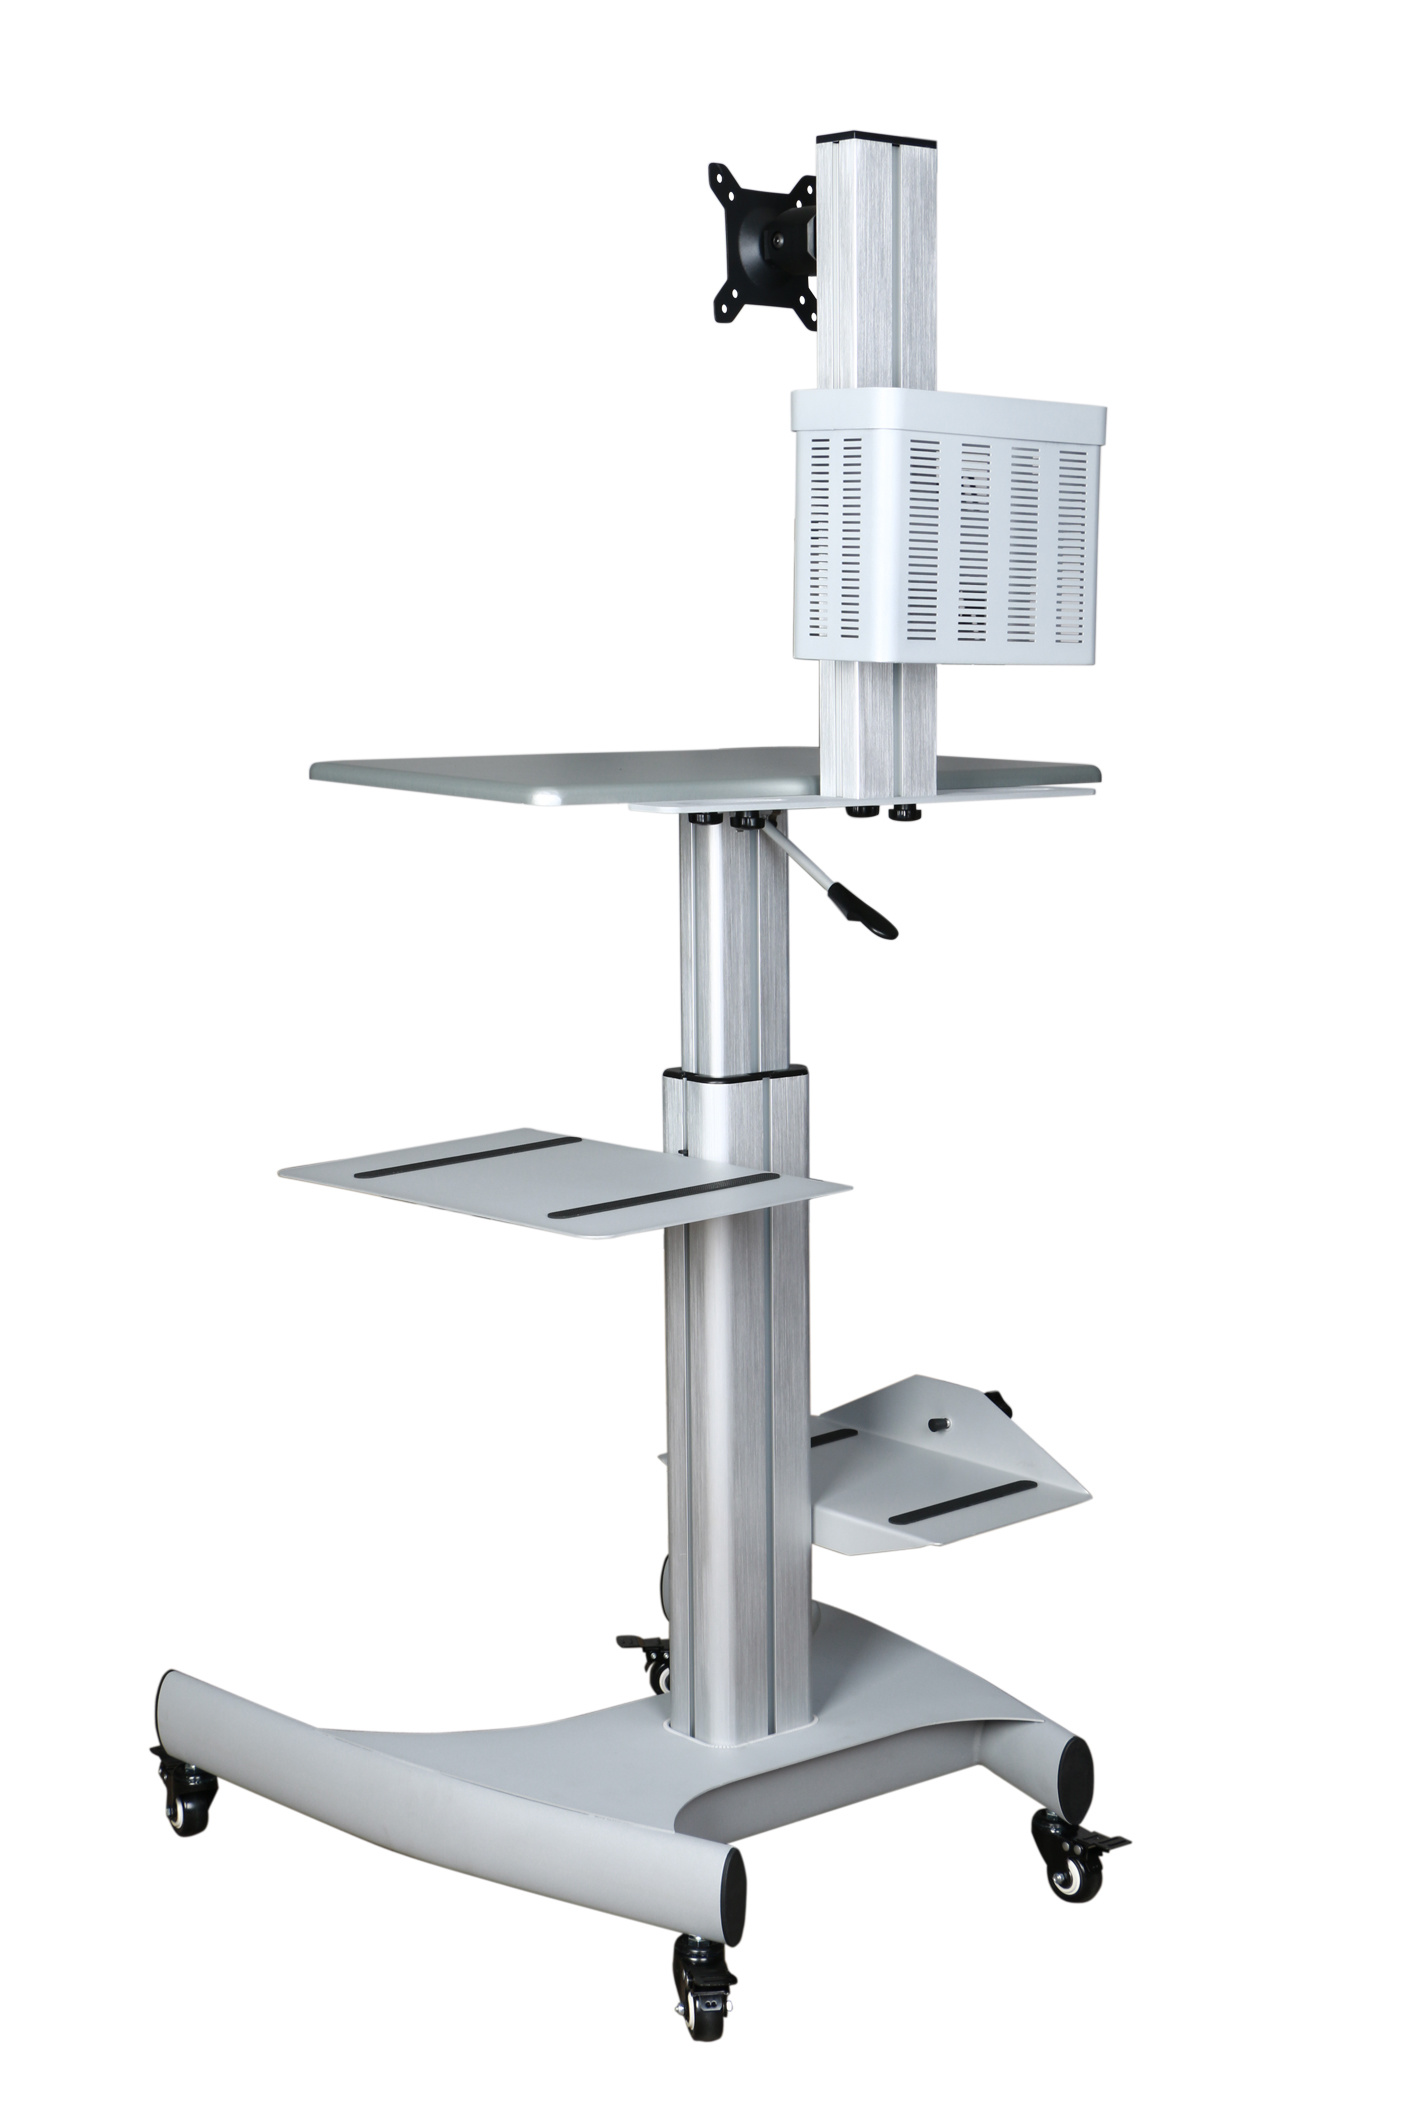 "Mobile Computer Workstation Gas Lift/Trolley Single Monitor 10-24"" Adjustable (GAS 1601)"